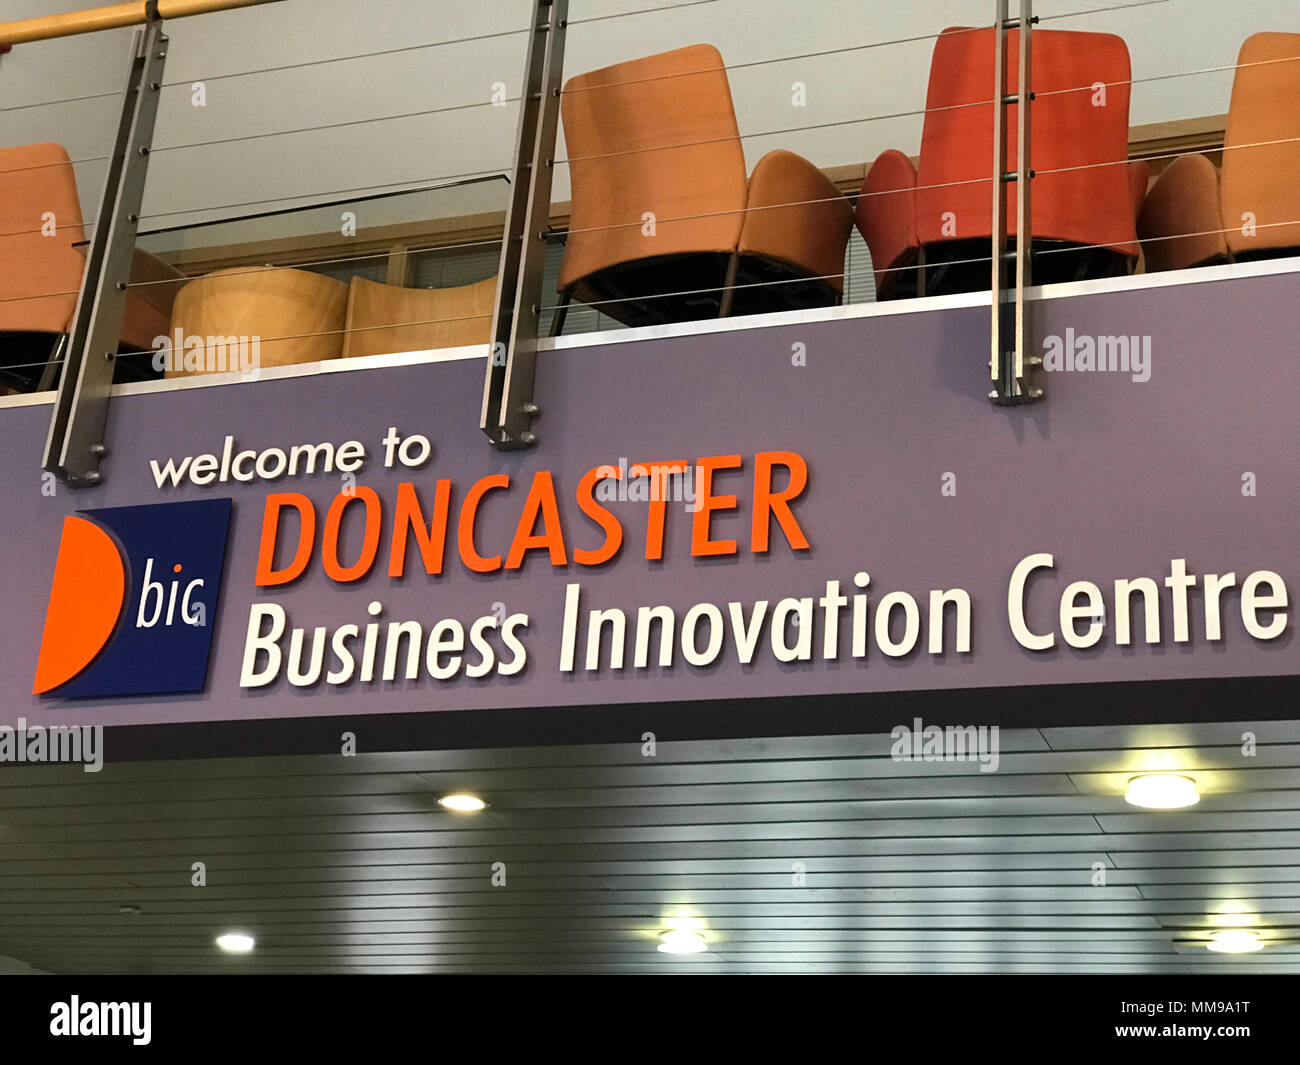 Doncaster BIC Business Innovation Centre, South Yorkshire, Ten Pound Walk, Doncaster DN4 5HX , England Stock Photo